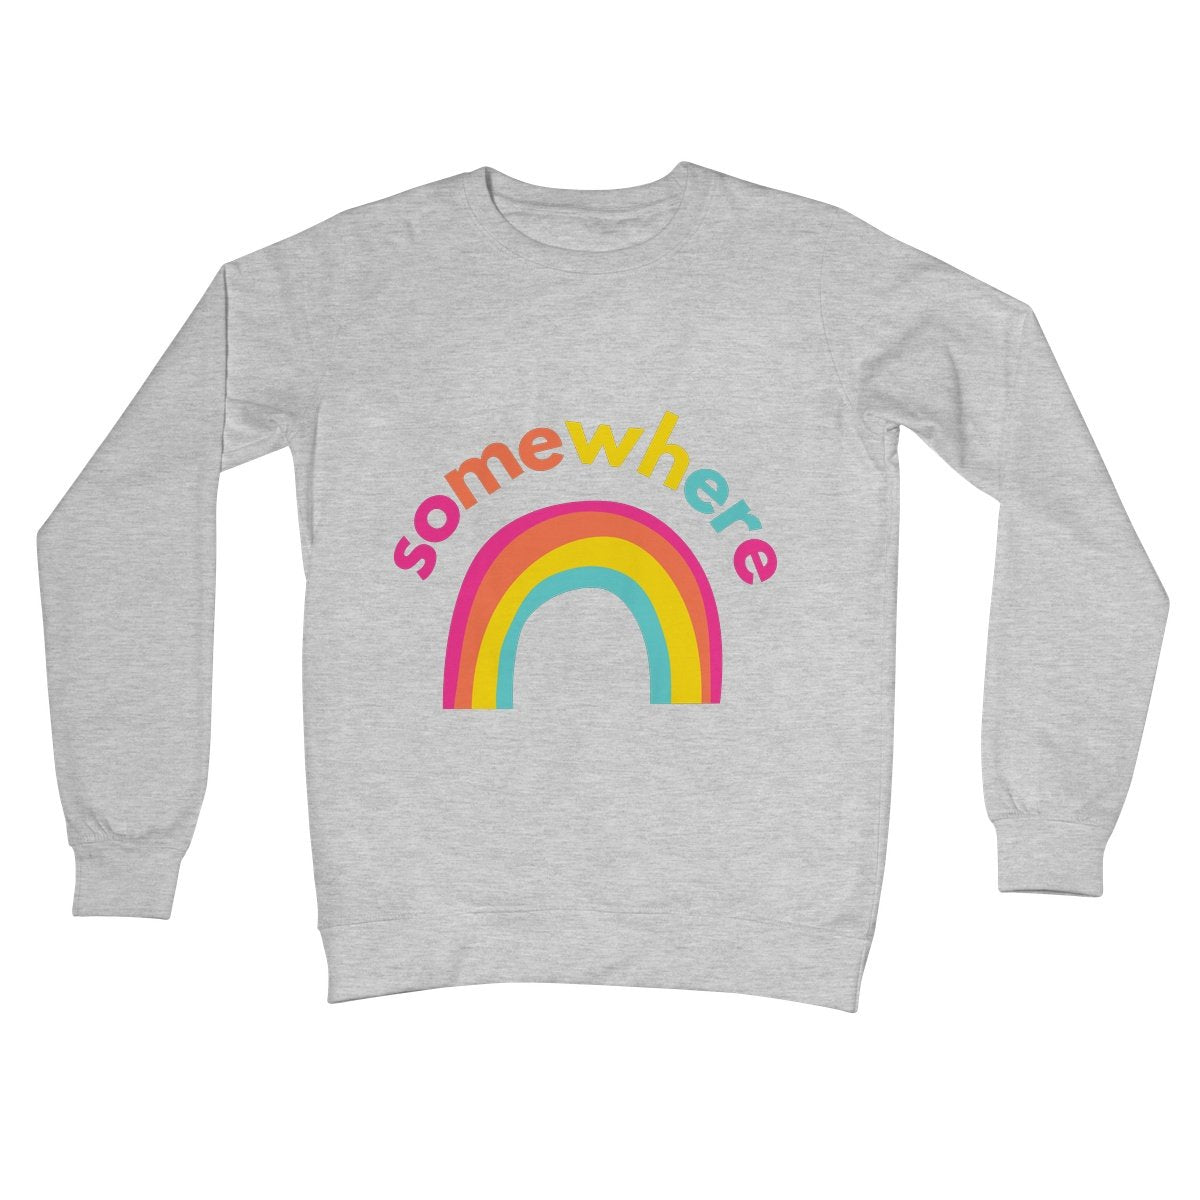 Somewhere Over The Rainbow Unisex Sweatshirt by stray funk design